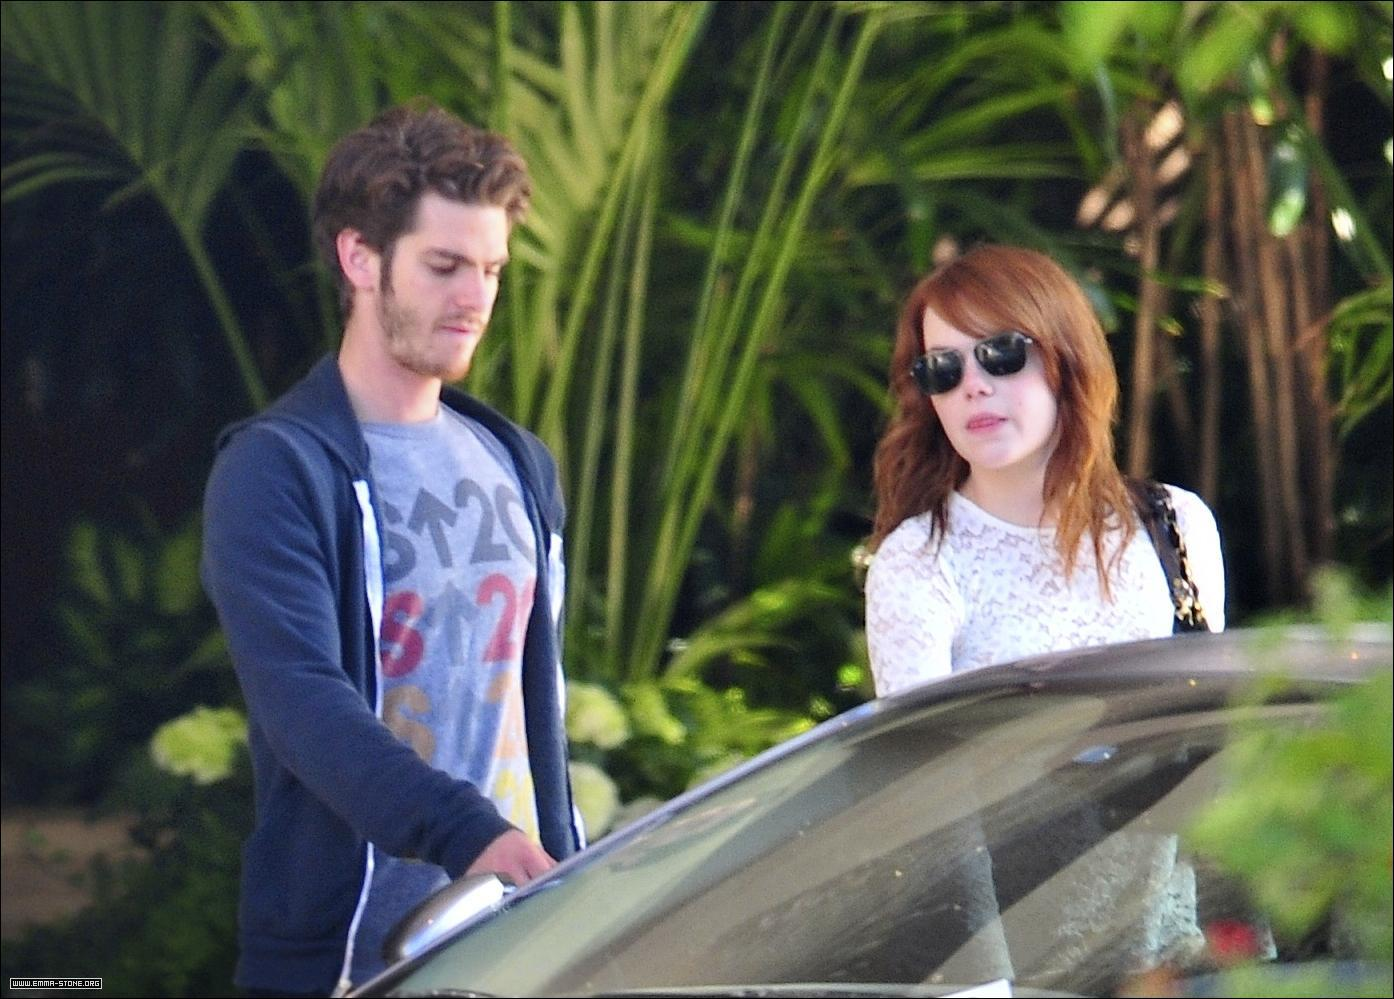 OCTOBER 23, 2011 - LOS ANGELES